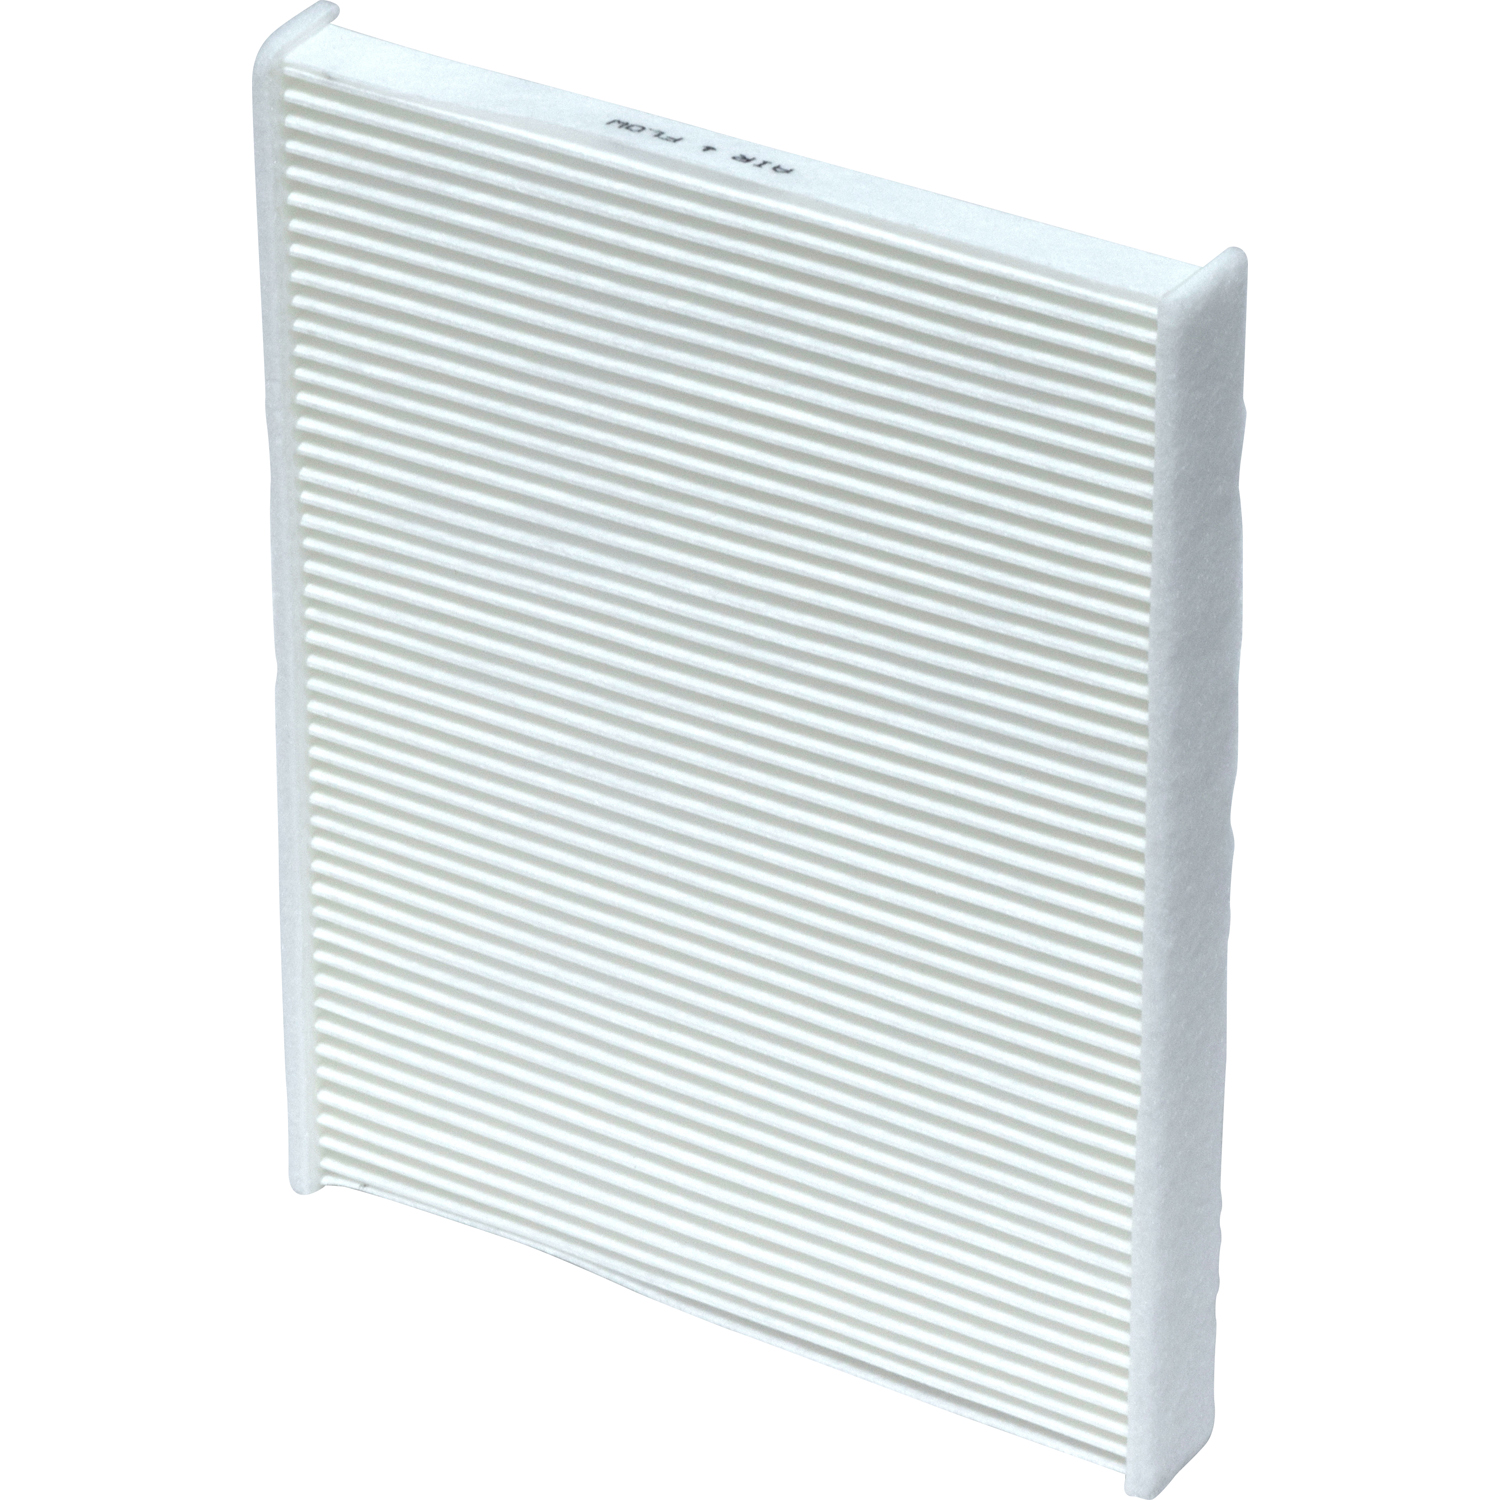 Charcoal Cabin Air Filter 11-14 FORD FIESTA 1